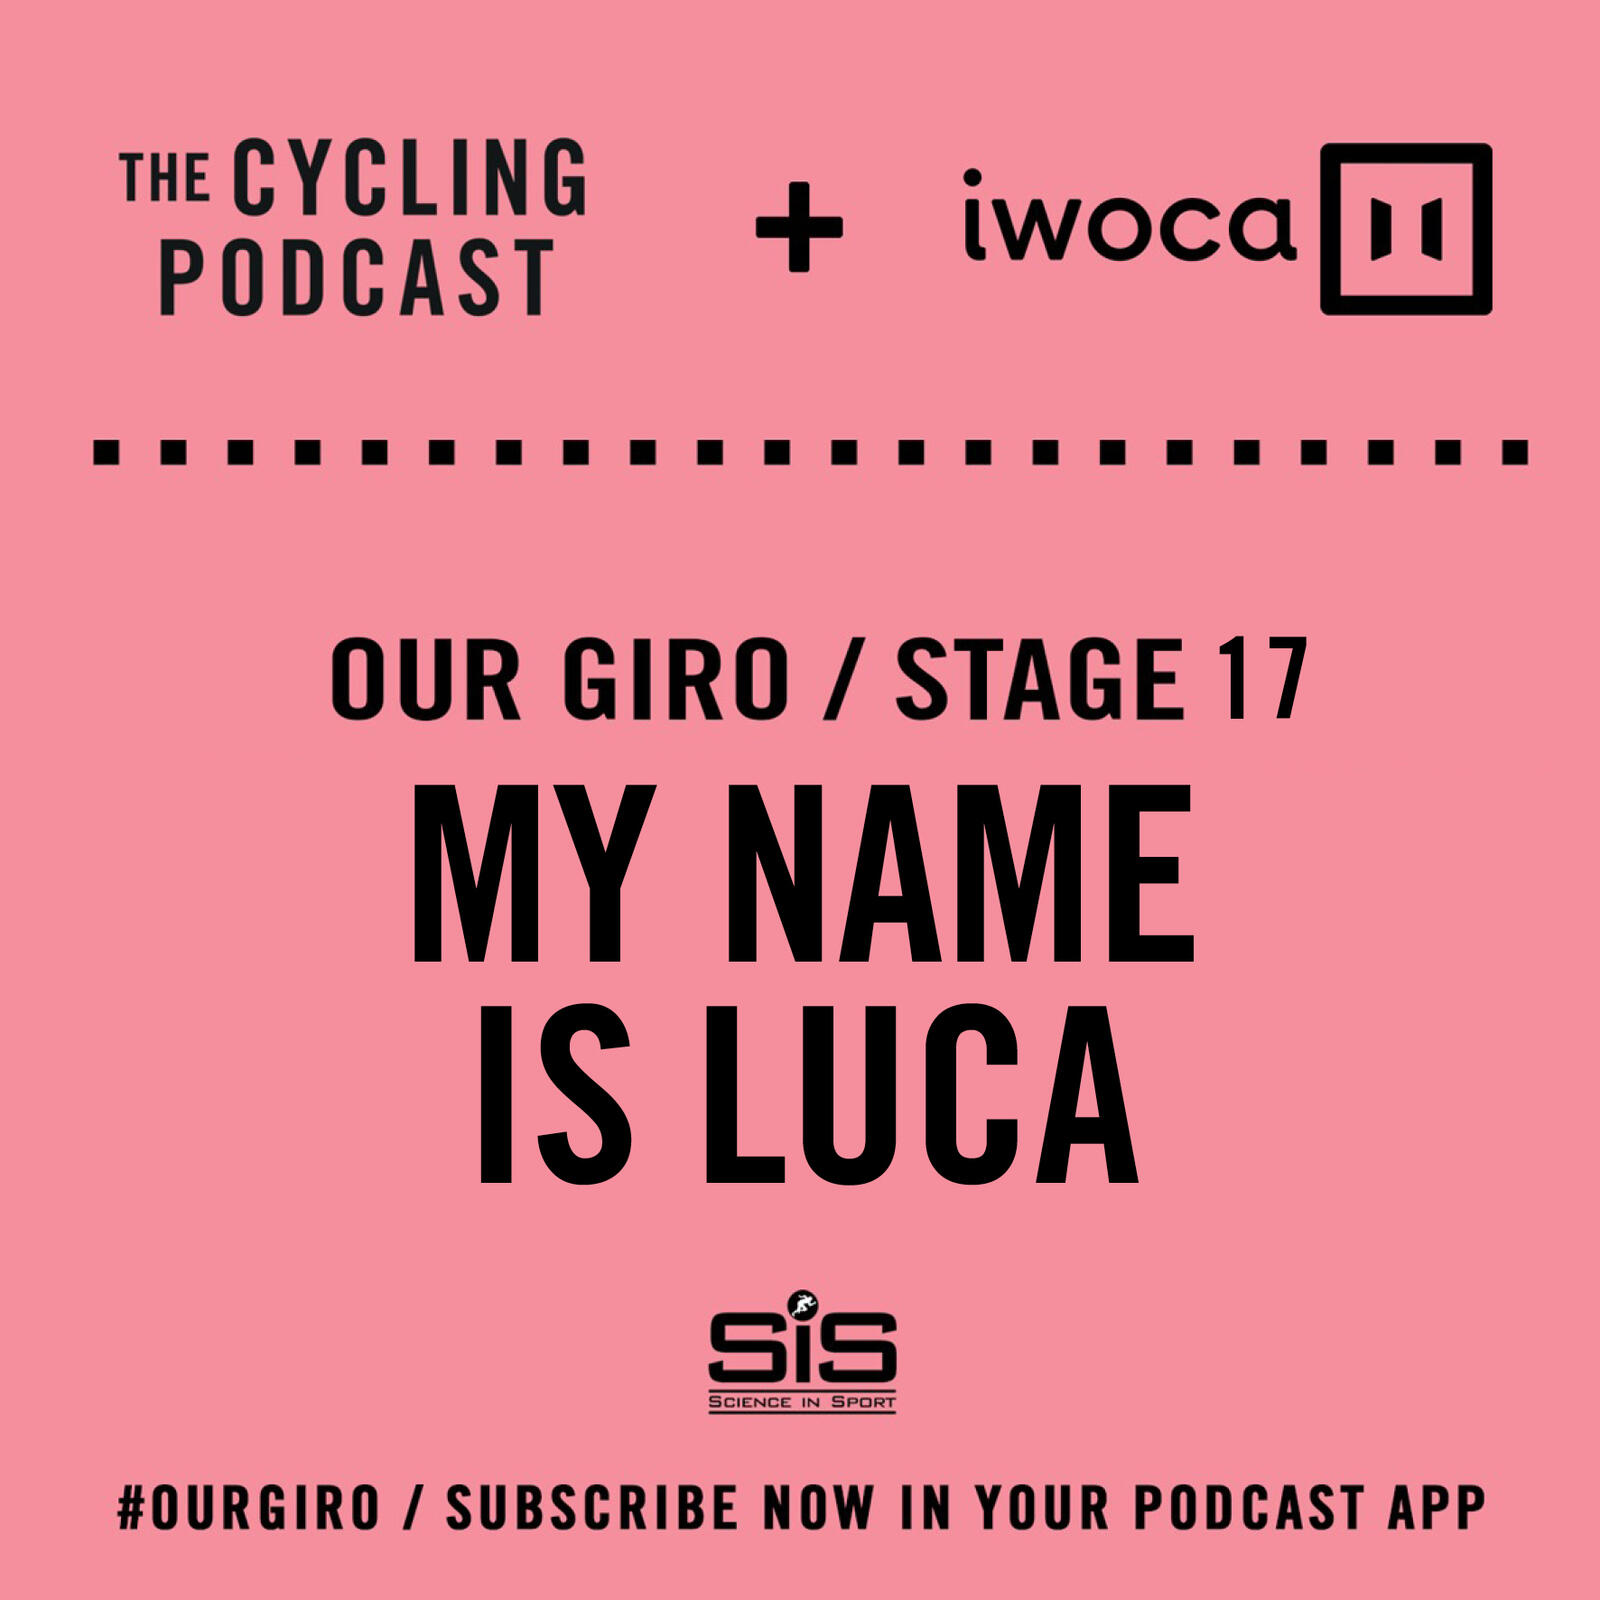 65: Our Giro stage 17: My name is Luca